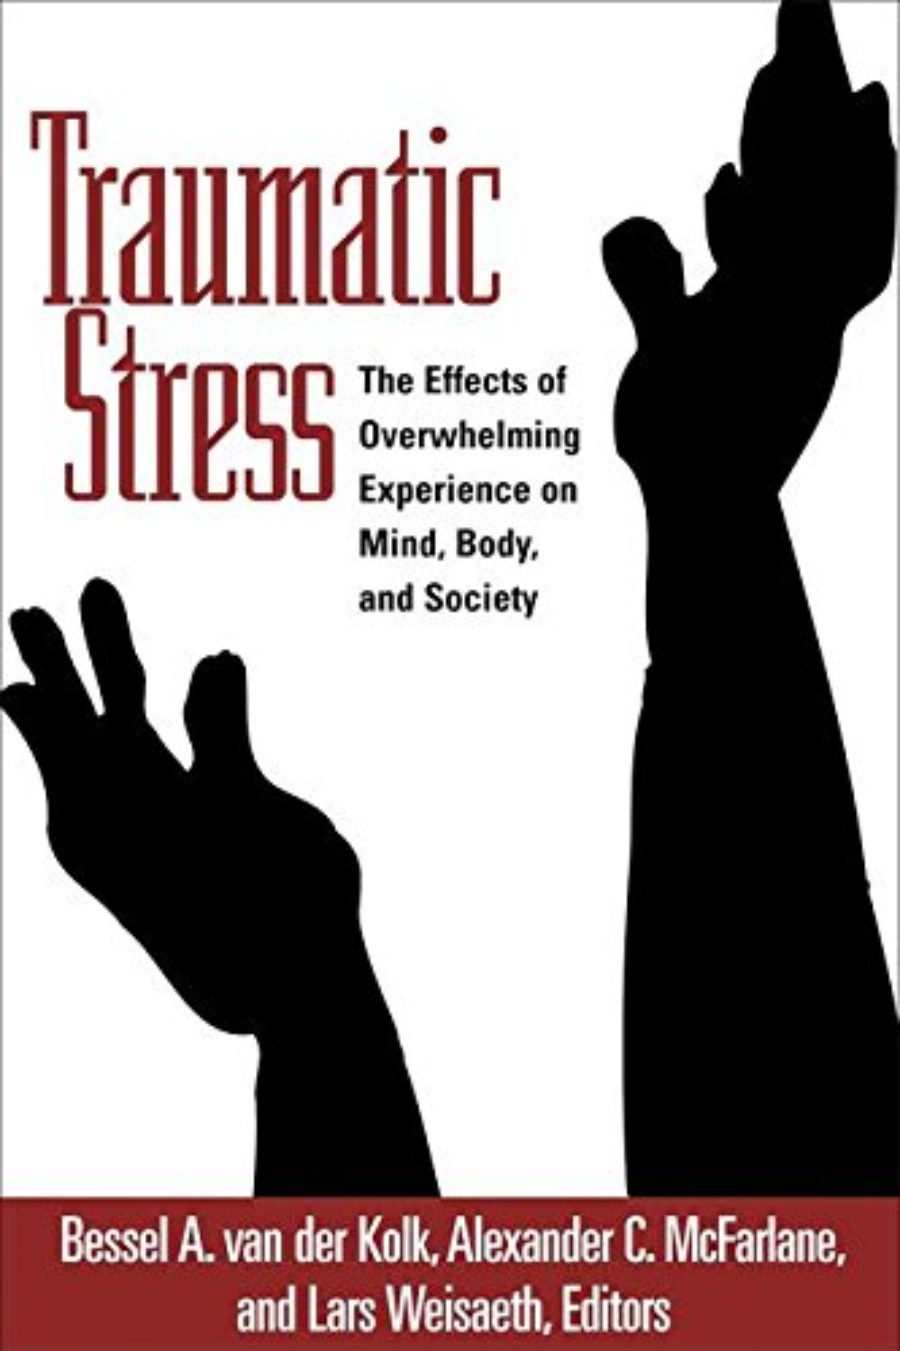 Cover of Traumatic Stress: The Effects of Overwhelming Experience on Mind, Body, and Society